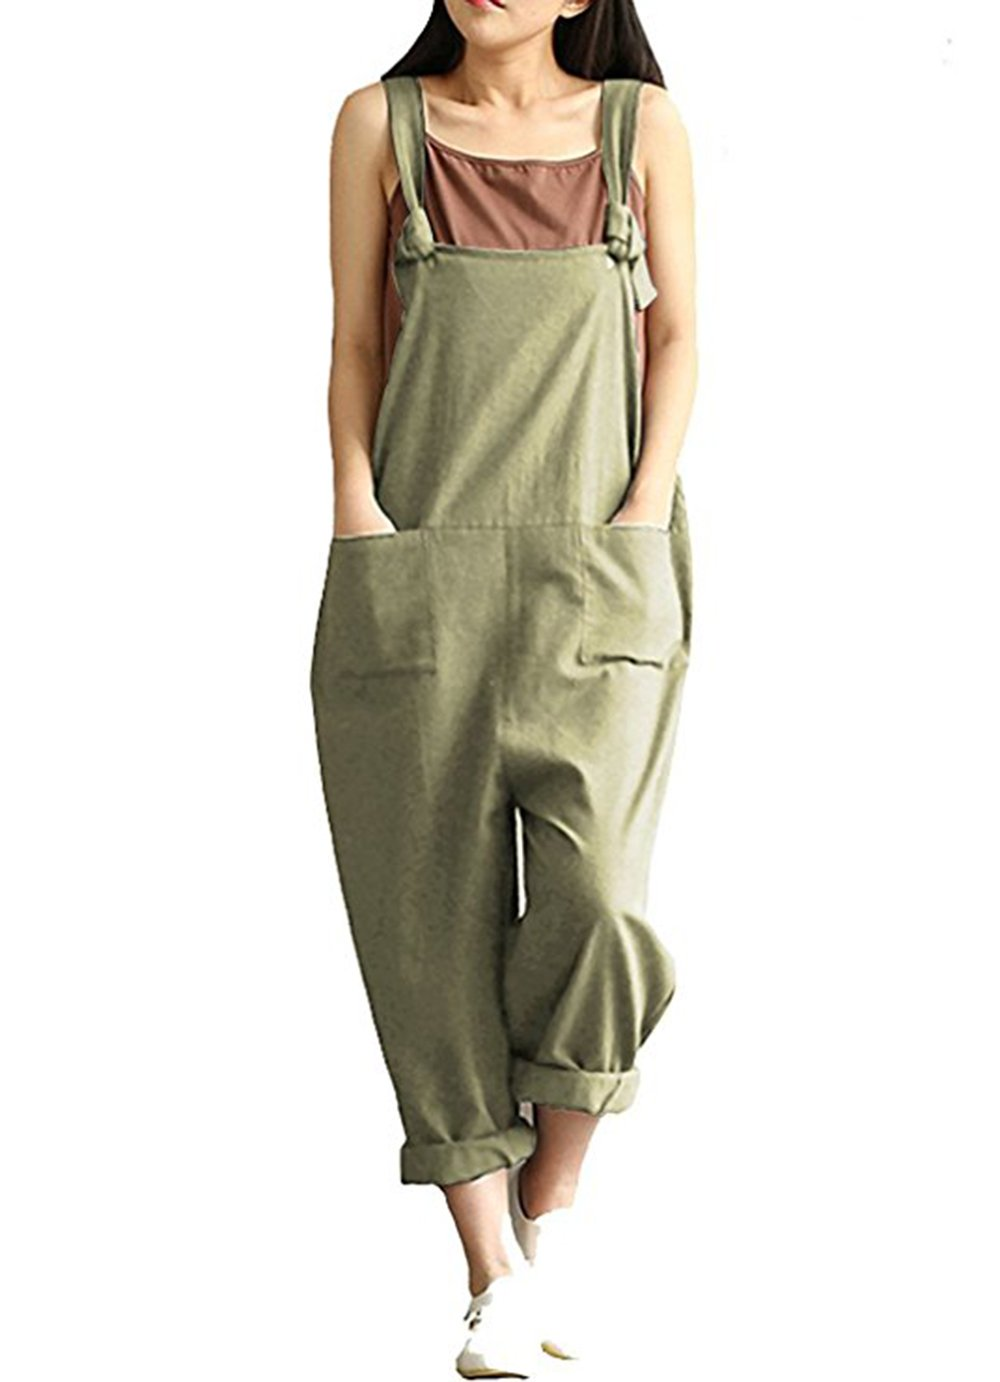 Aedvoouer Womens Casual Loose Cotton Bib Baggy Overalls Jumpsuit Pants Plus Size Romper (3XL, Green)